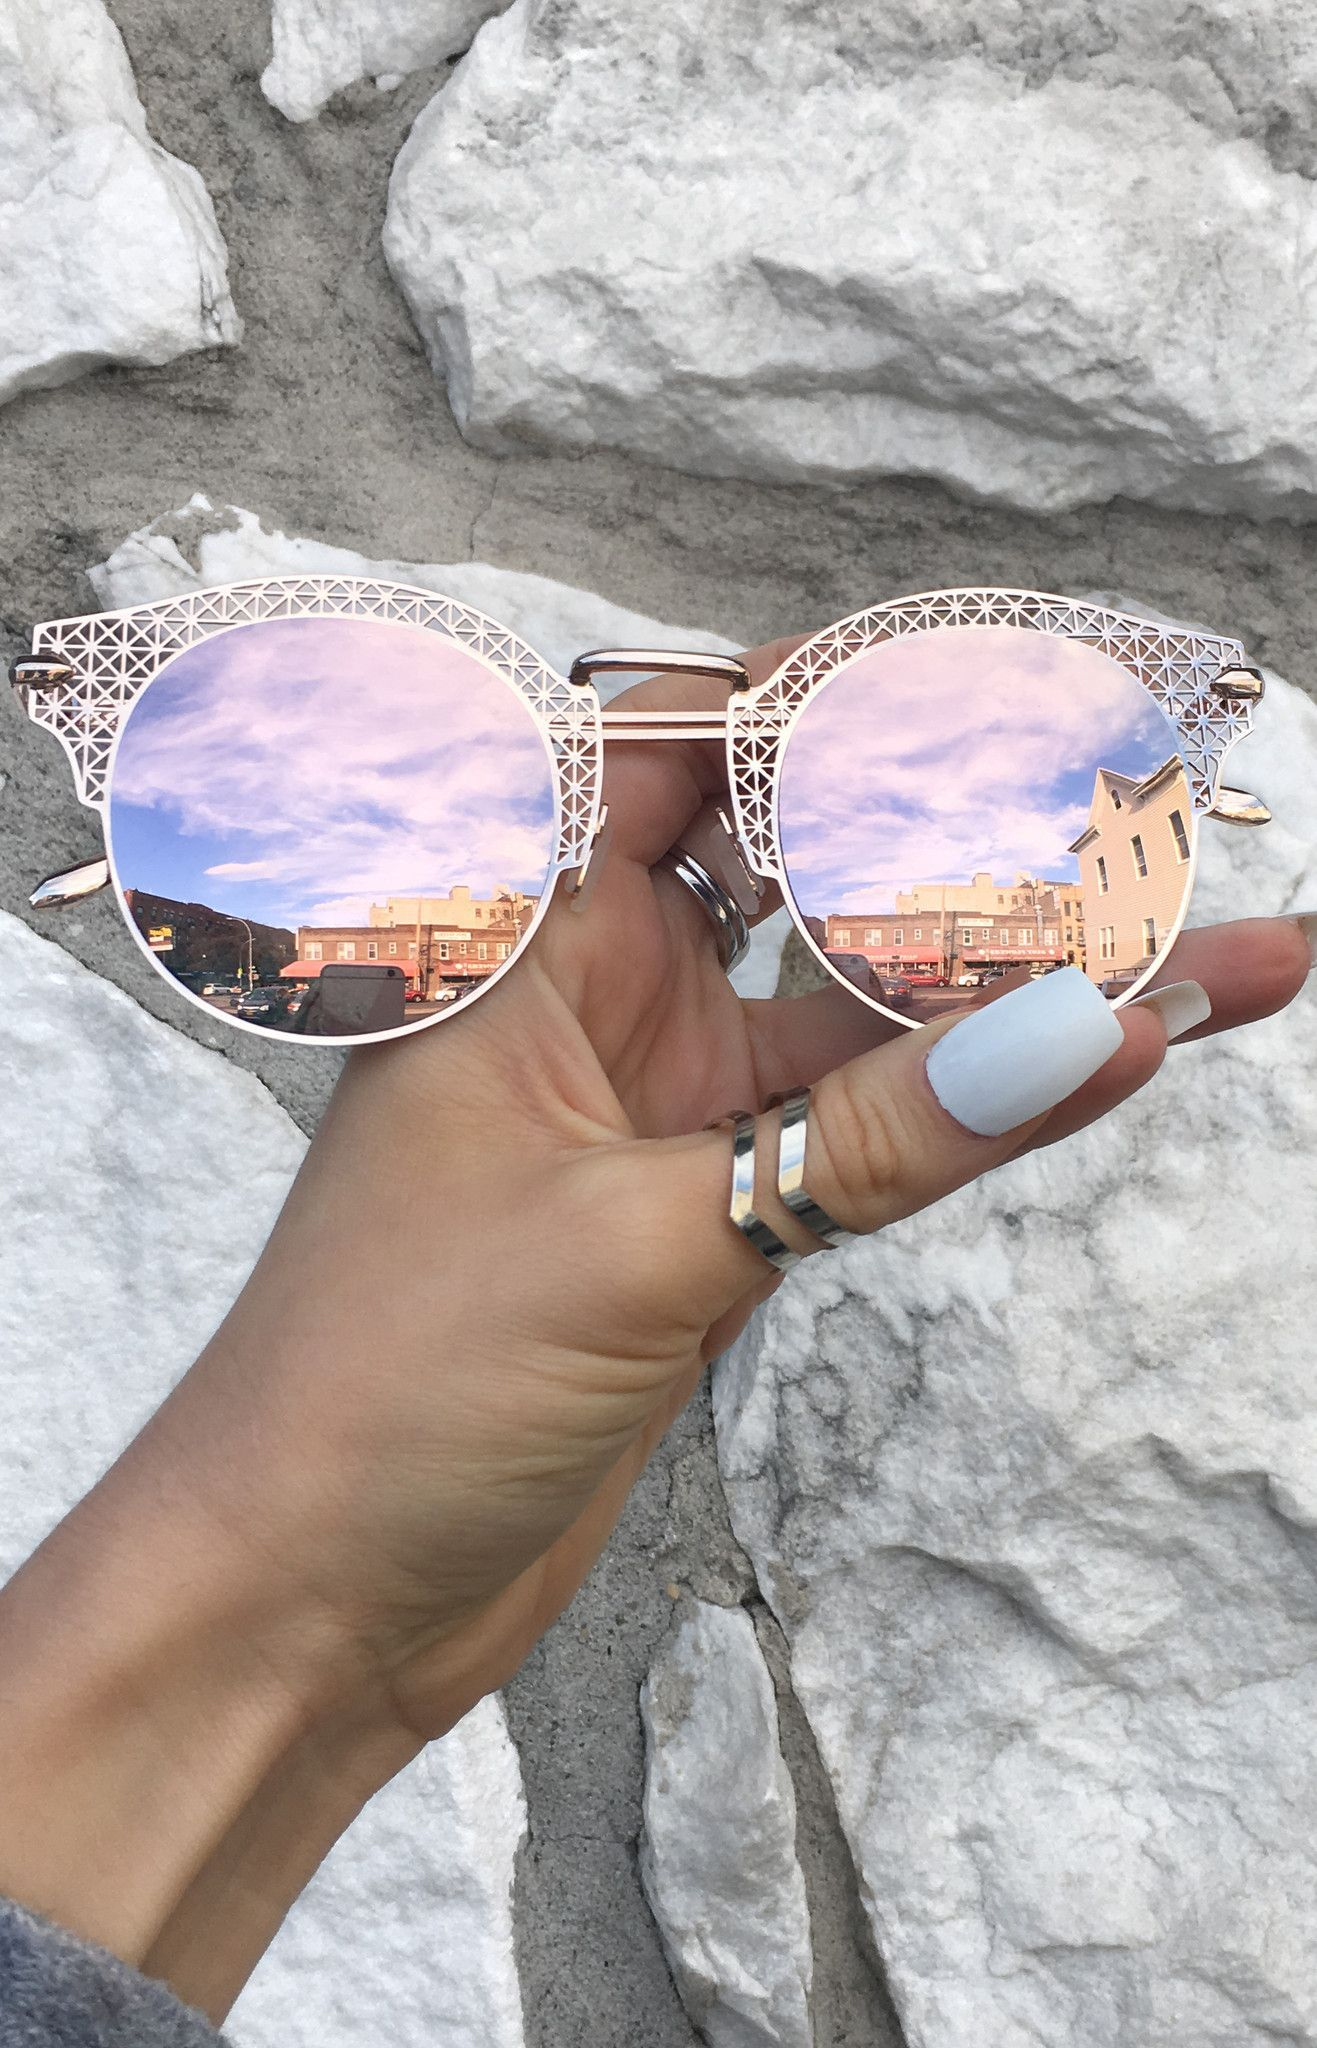 eb06c113f Angel Sunnies - Rose Gold These women Topfoxx Sunglasses are reflective  mirrored eyewear in pink. These are great for small face shapes with a  vintage, ...